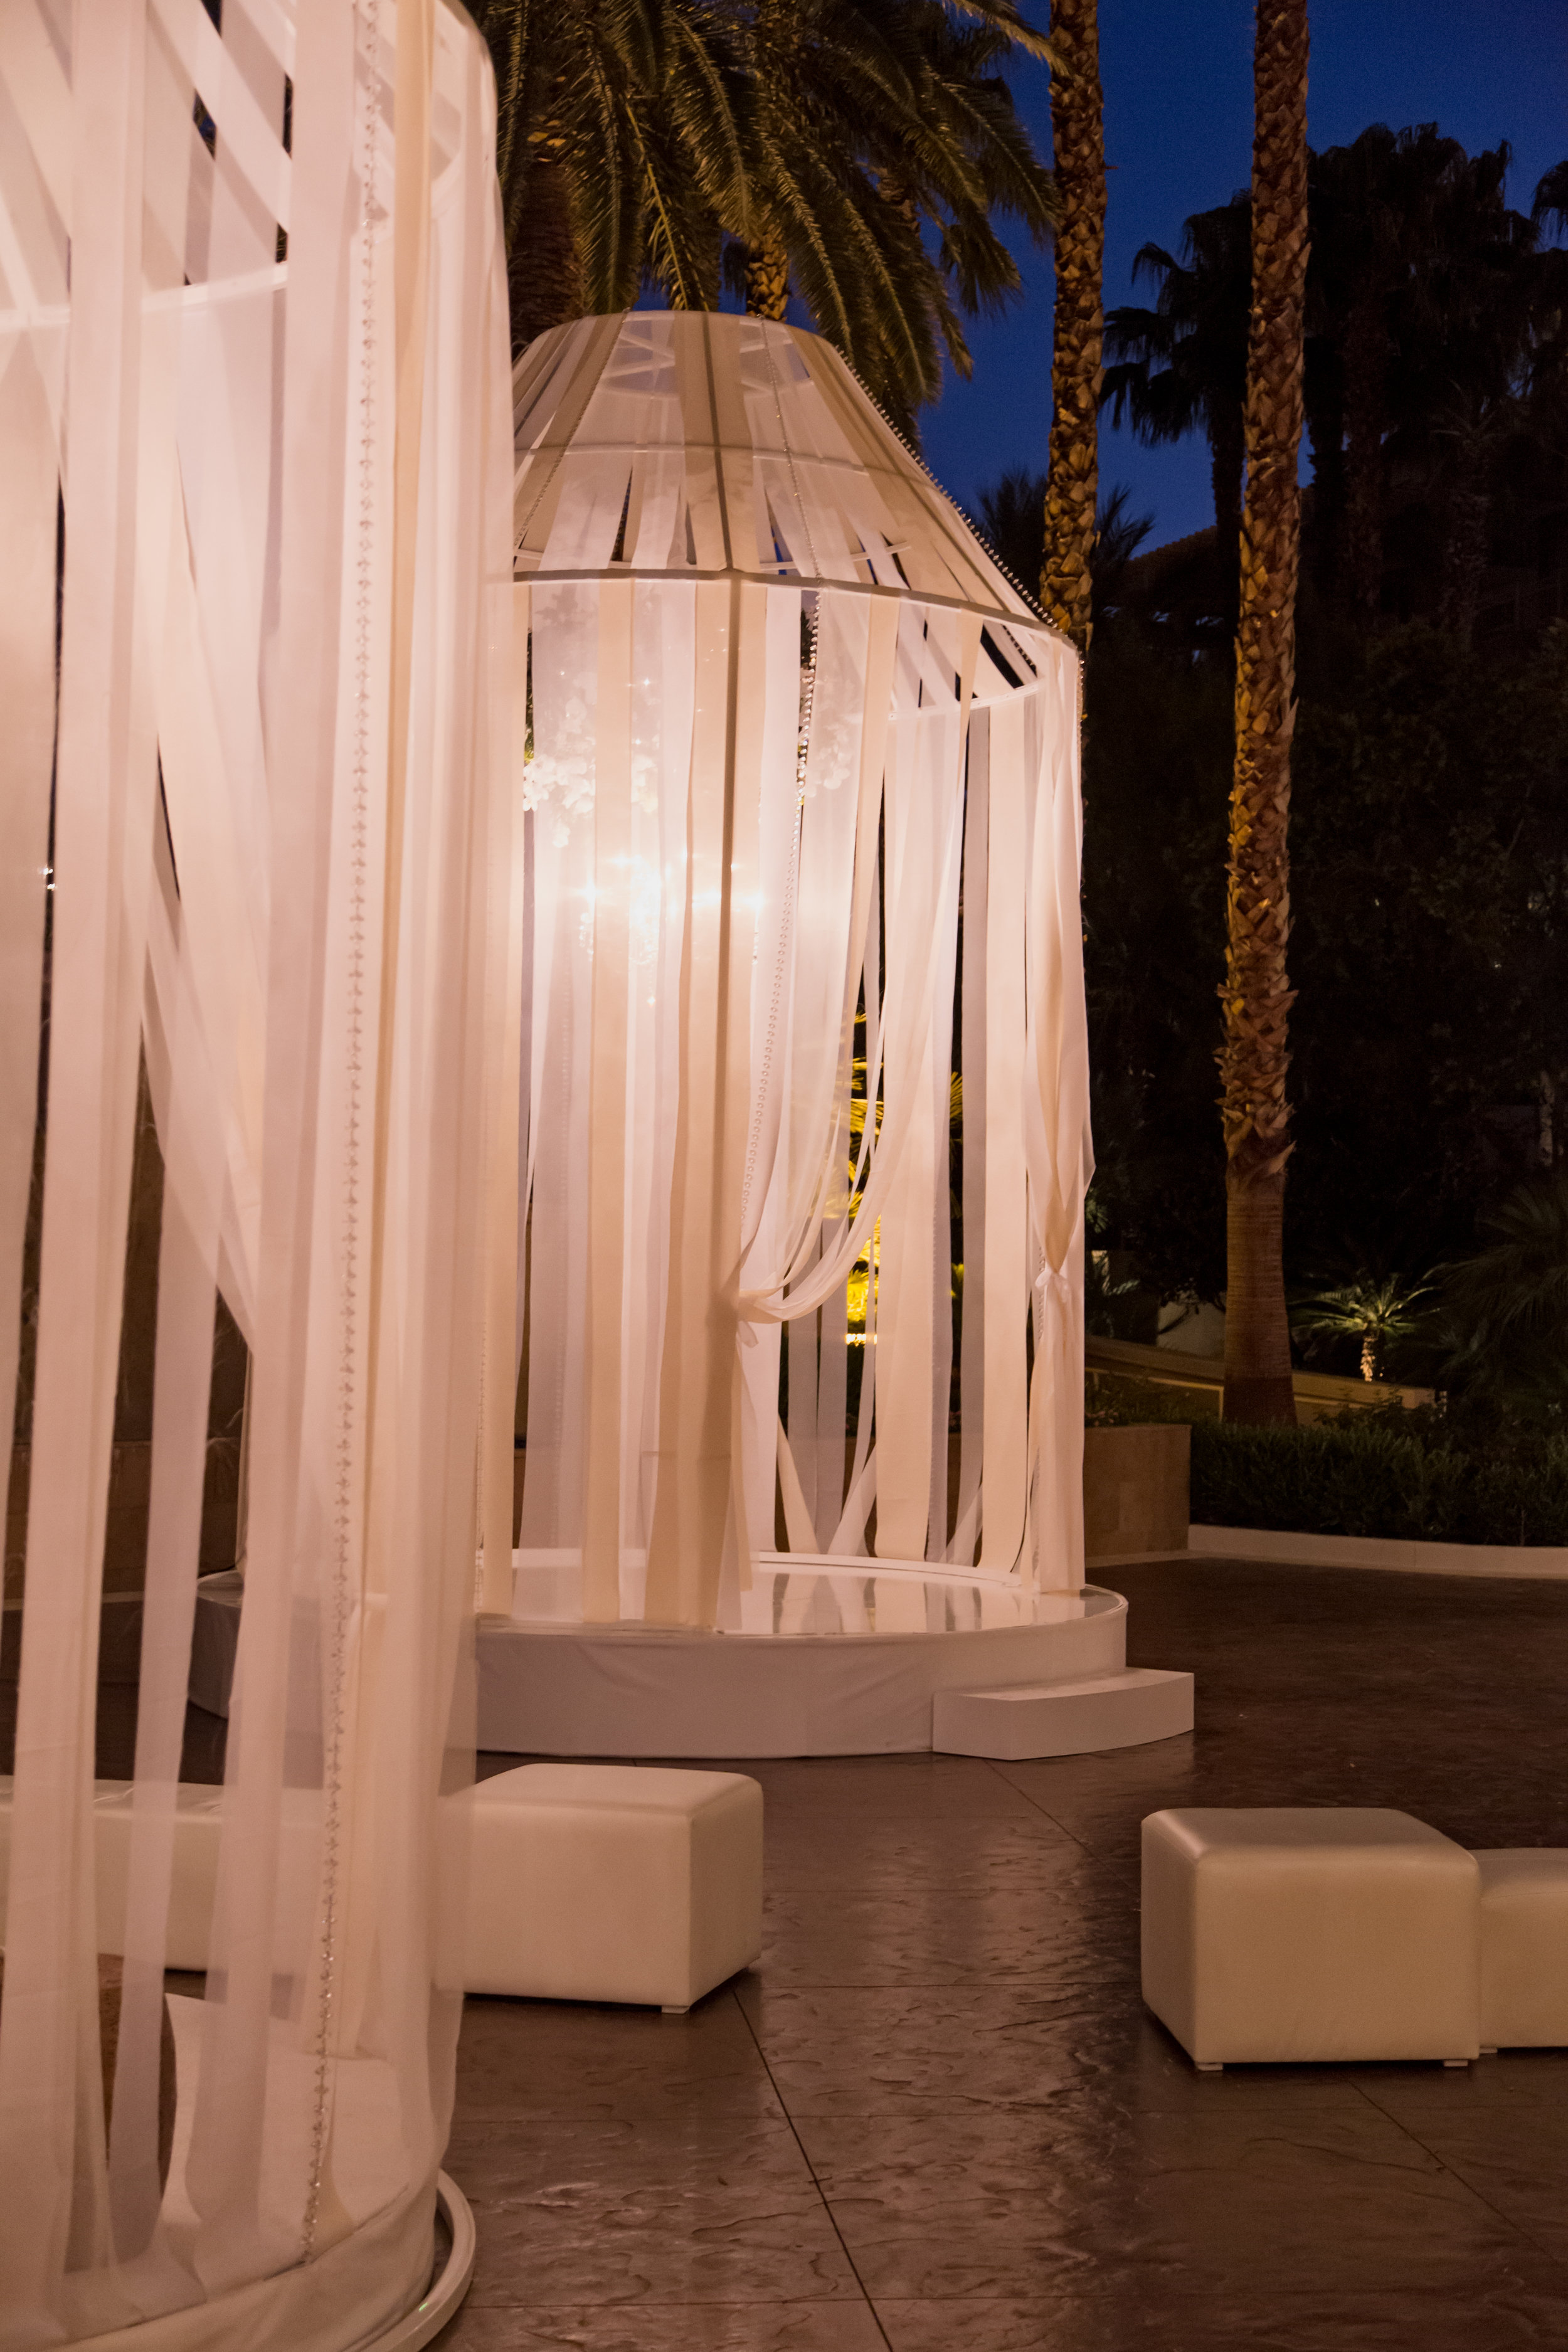 Oversized birdcages lit at night. Destination Wedding Planner  Andrea Eppolito ·Photos by  Adam Frazier Photography ·Floral and Decor by  Destinations by Design · Lighting by  LED Unplugged ·Venue · Invitations  Ceci New York  · Menus by  Alligator Soup